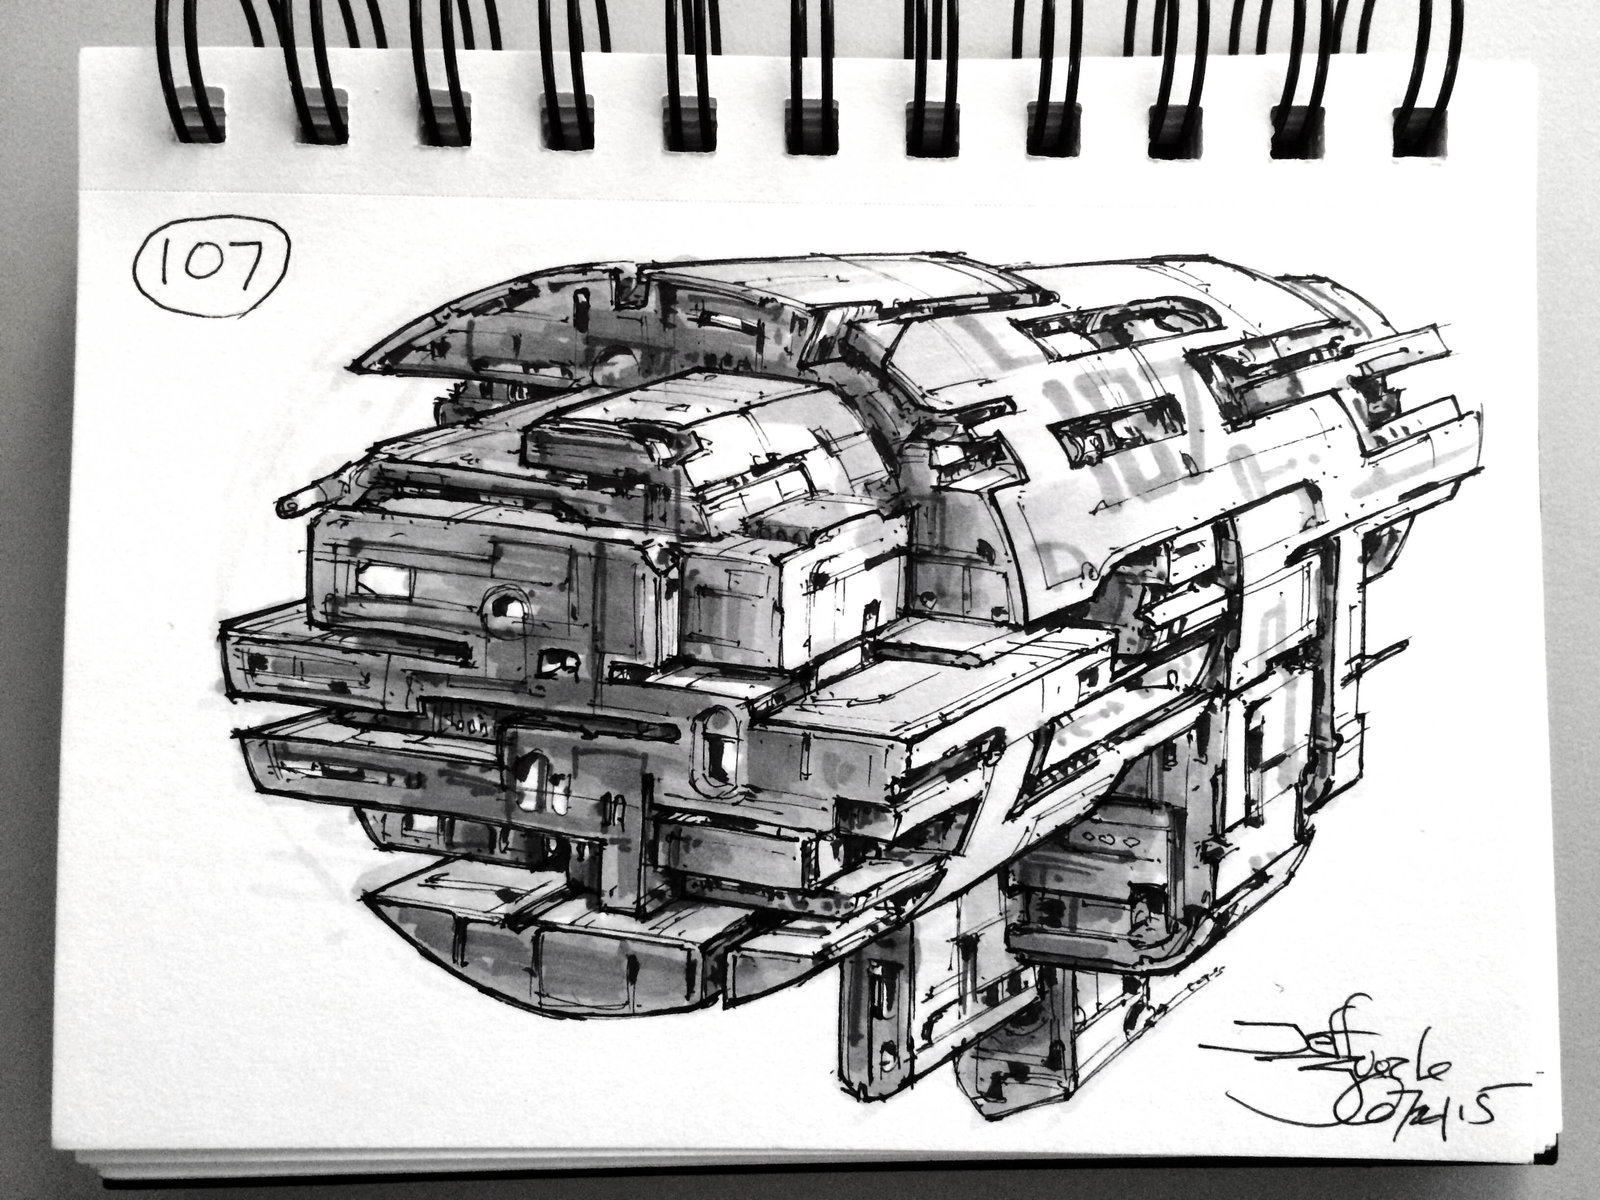 SpaceshipADay 107